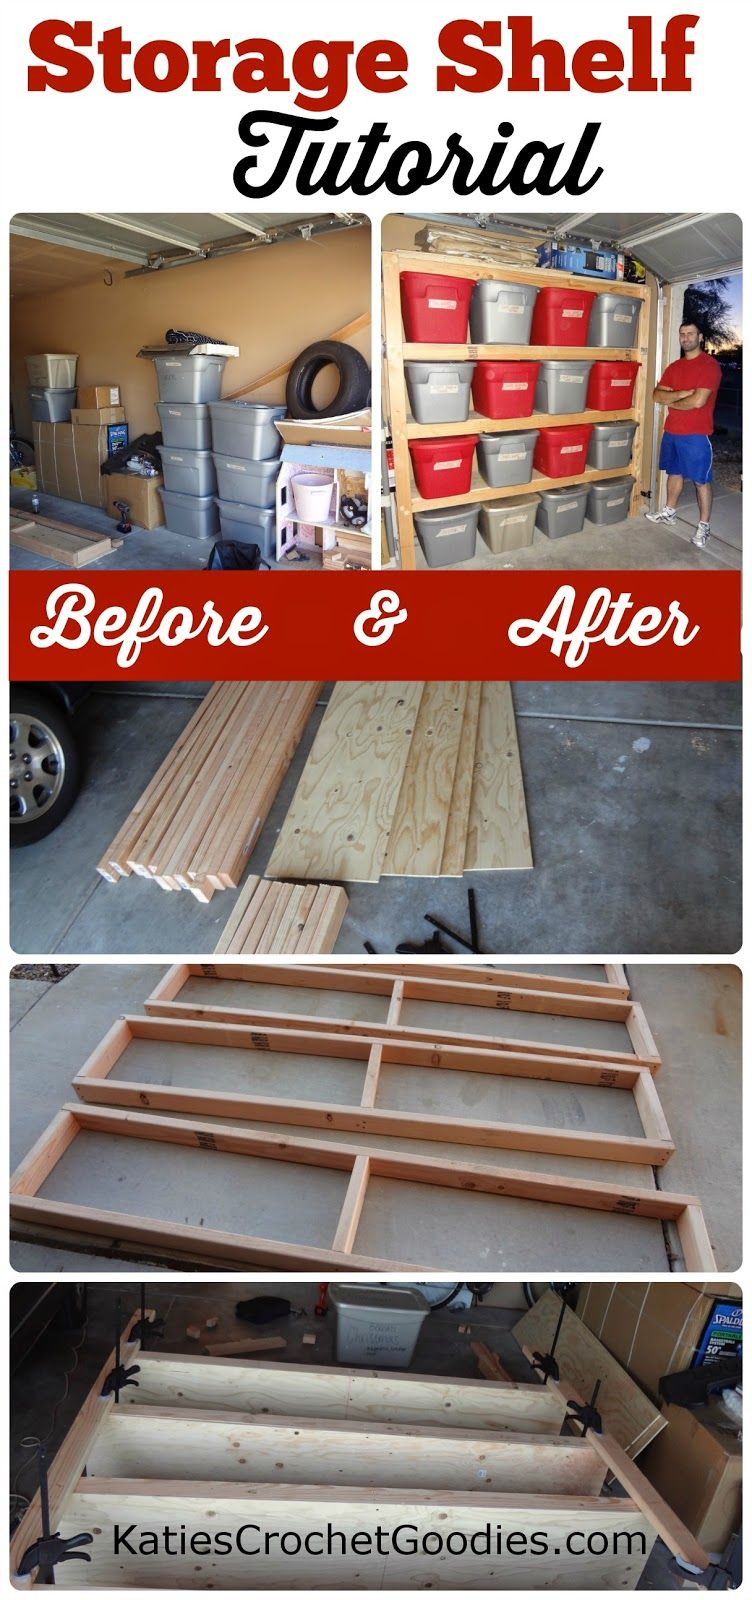 Build shelves in garage for seasonal totes - much easier to access ...